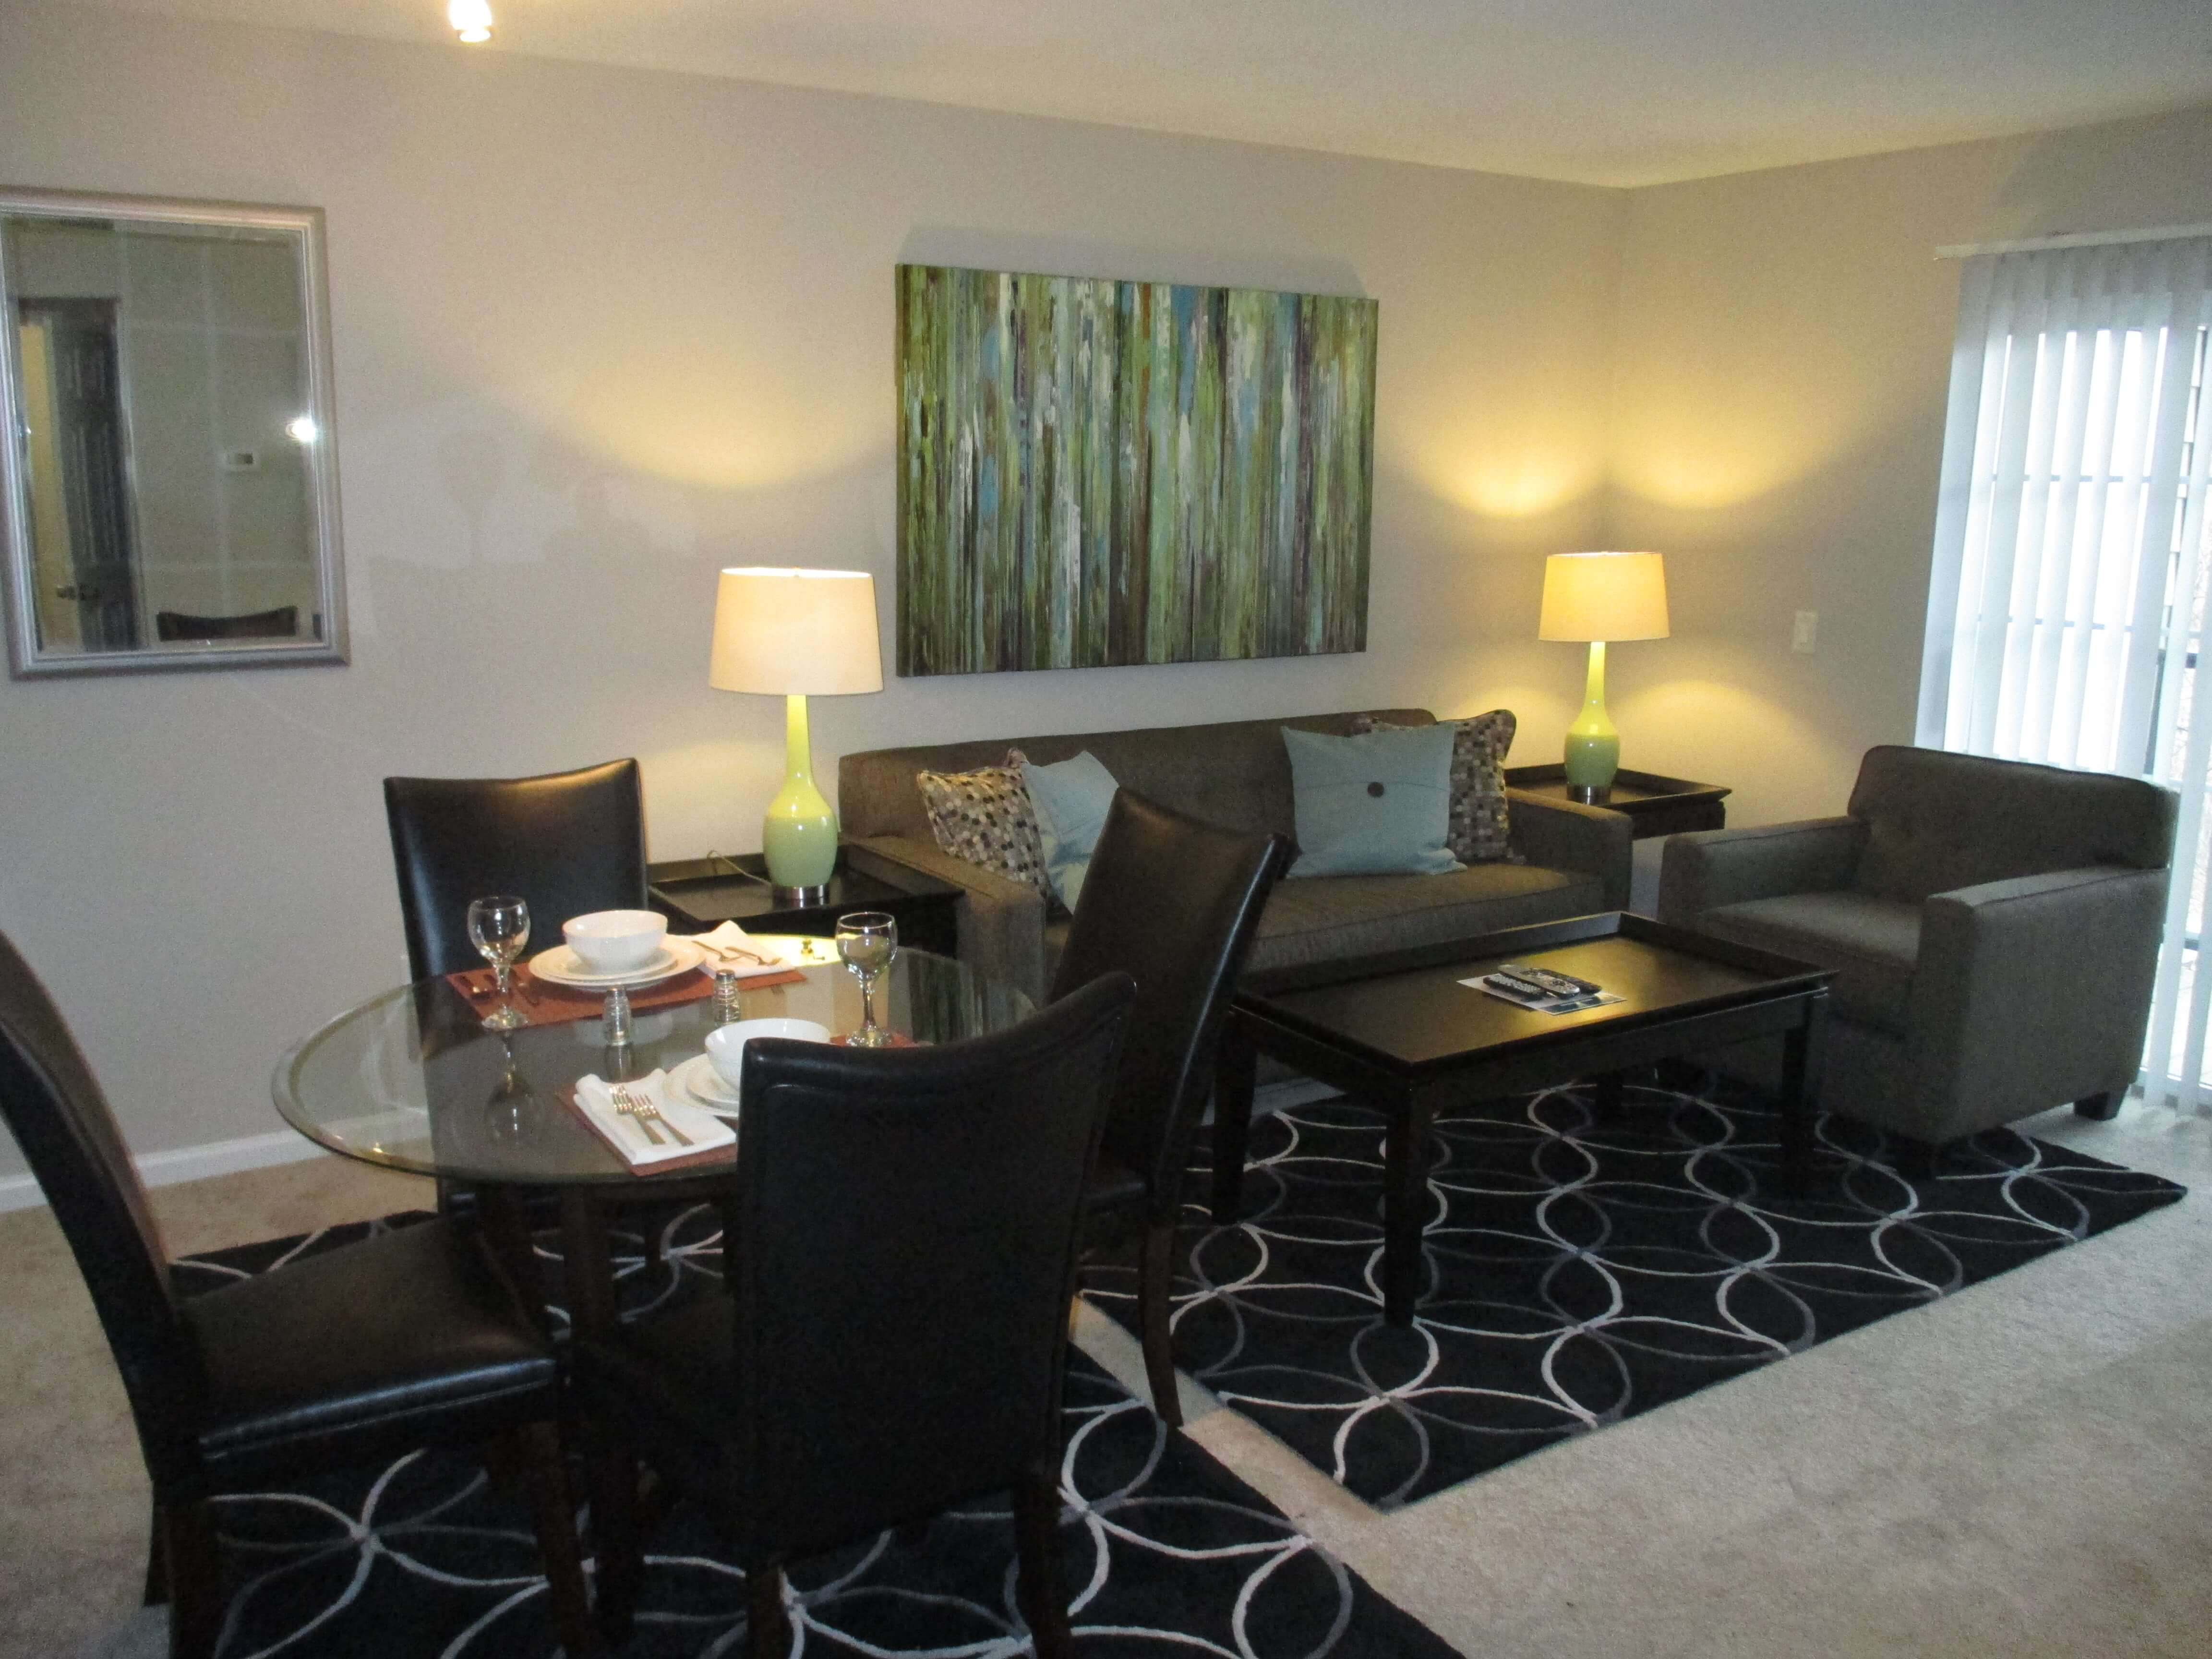 stamford furnished 1 bedroom apartment for rent 5160 per